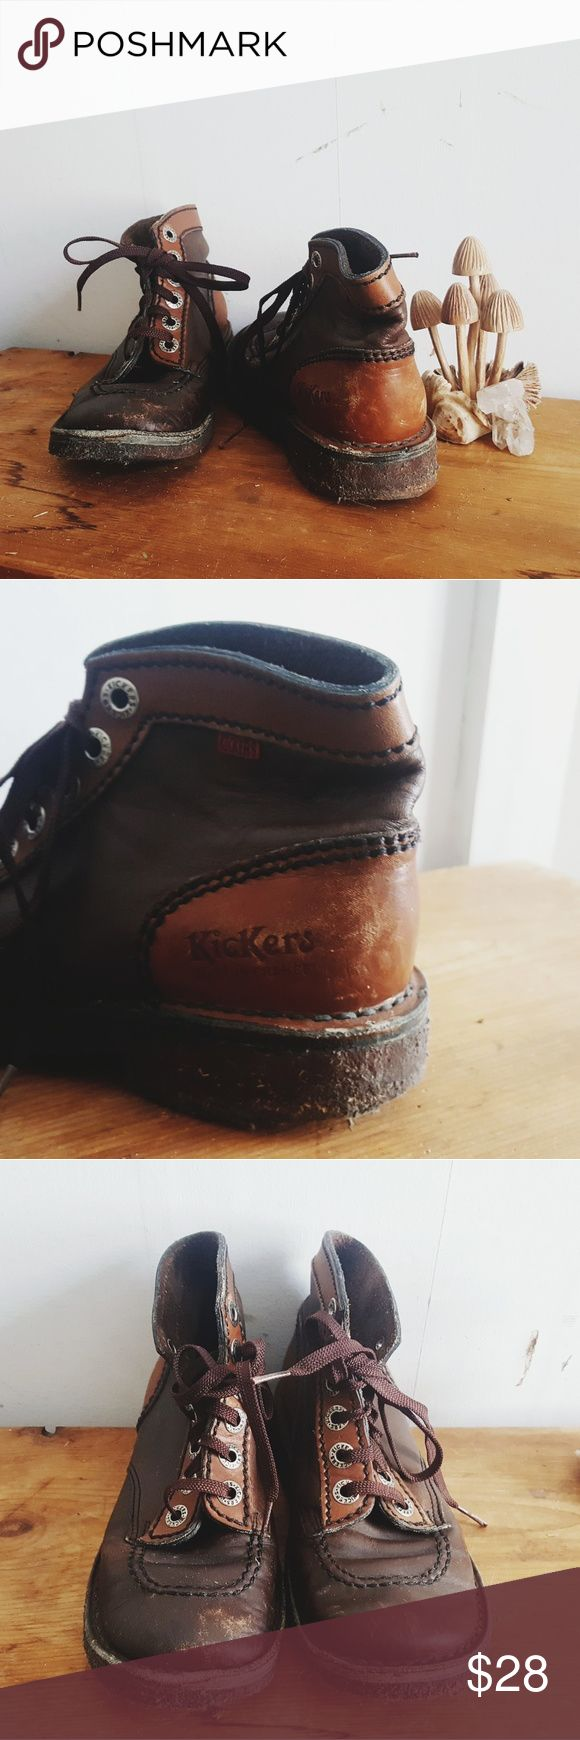 Women's Kickers Leather Boots 37 Made in France. These run a bit small! Fit more like a US 6 or 6.5. They've been well loved but are really comfy and cute. Kickers Shoes Ankle Boots & Booties